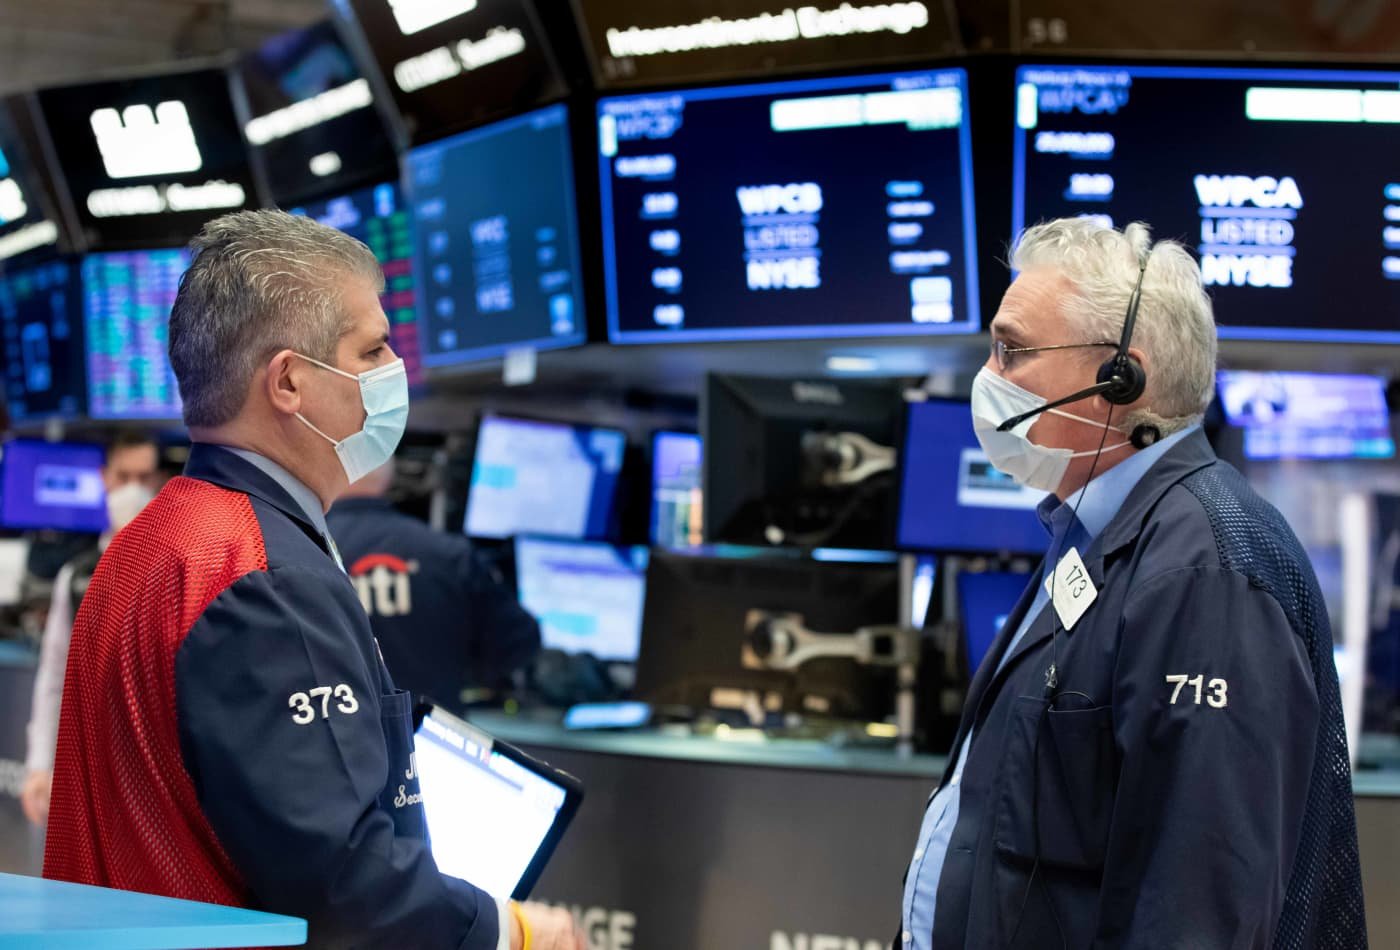 Live for today or trade tomorrow? Breaking down the heated stock market battle unfolding right now